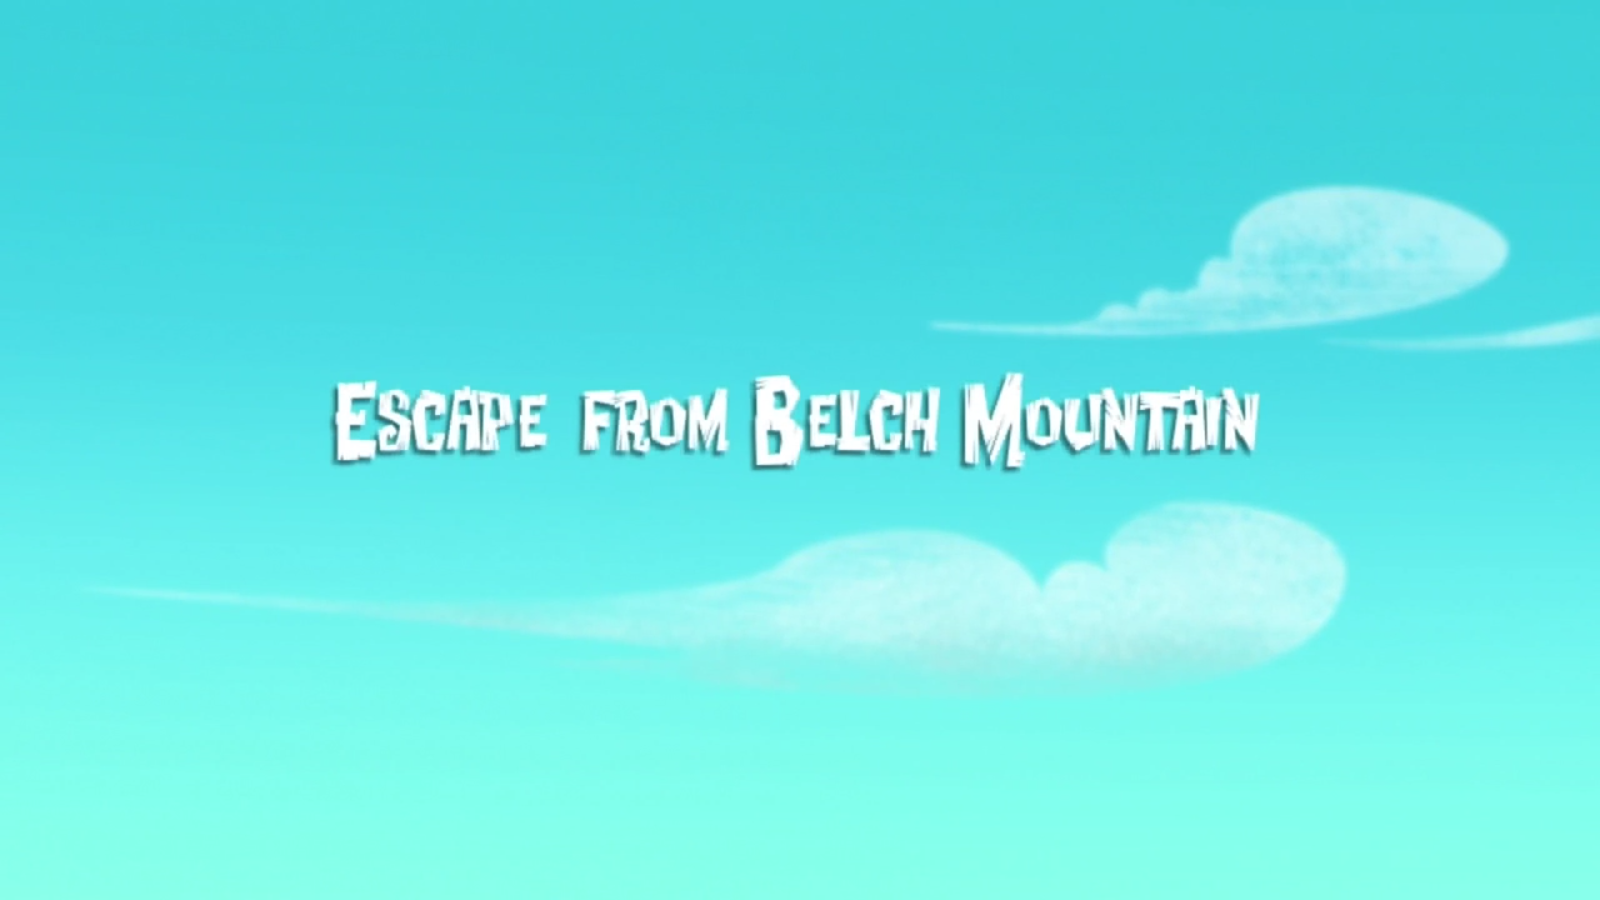 File:Escape from belch moutain titlecard.png